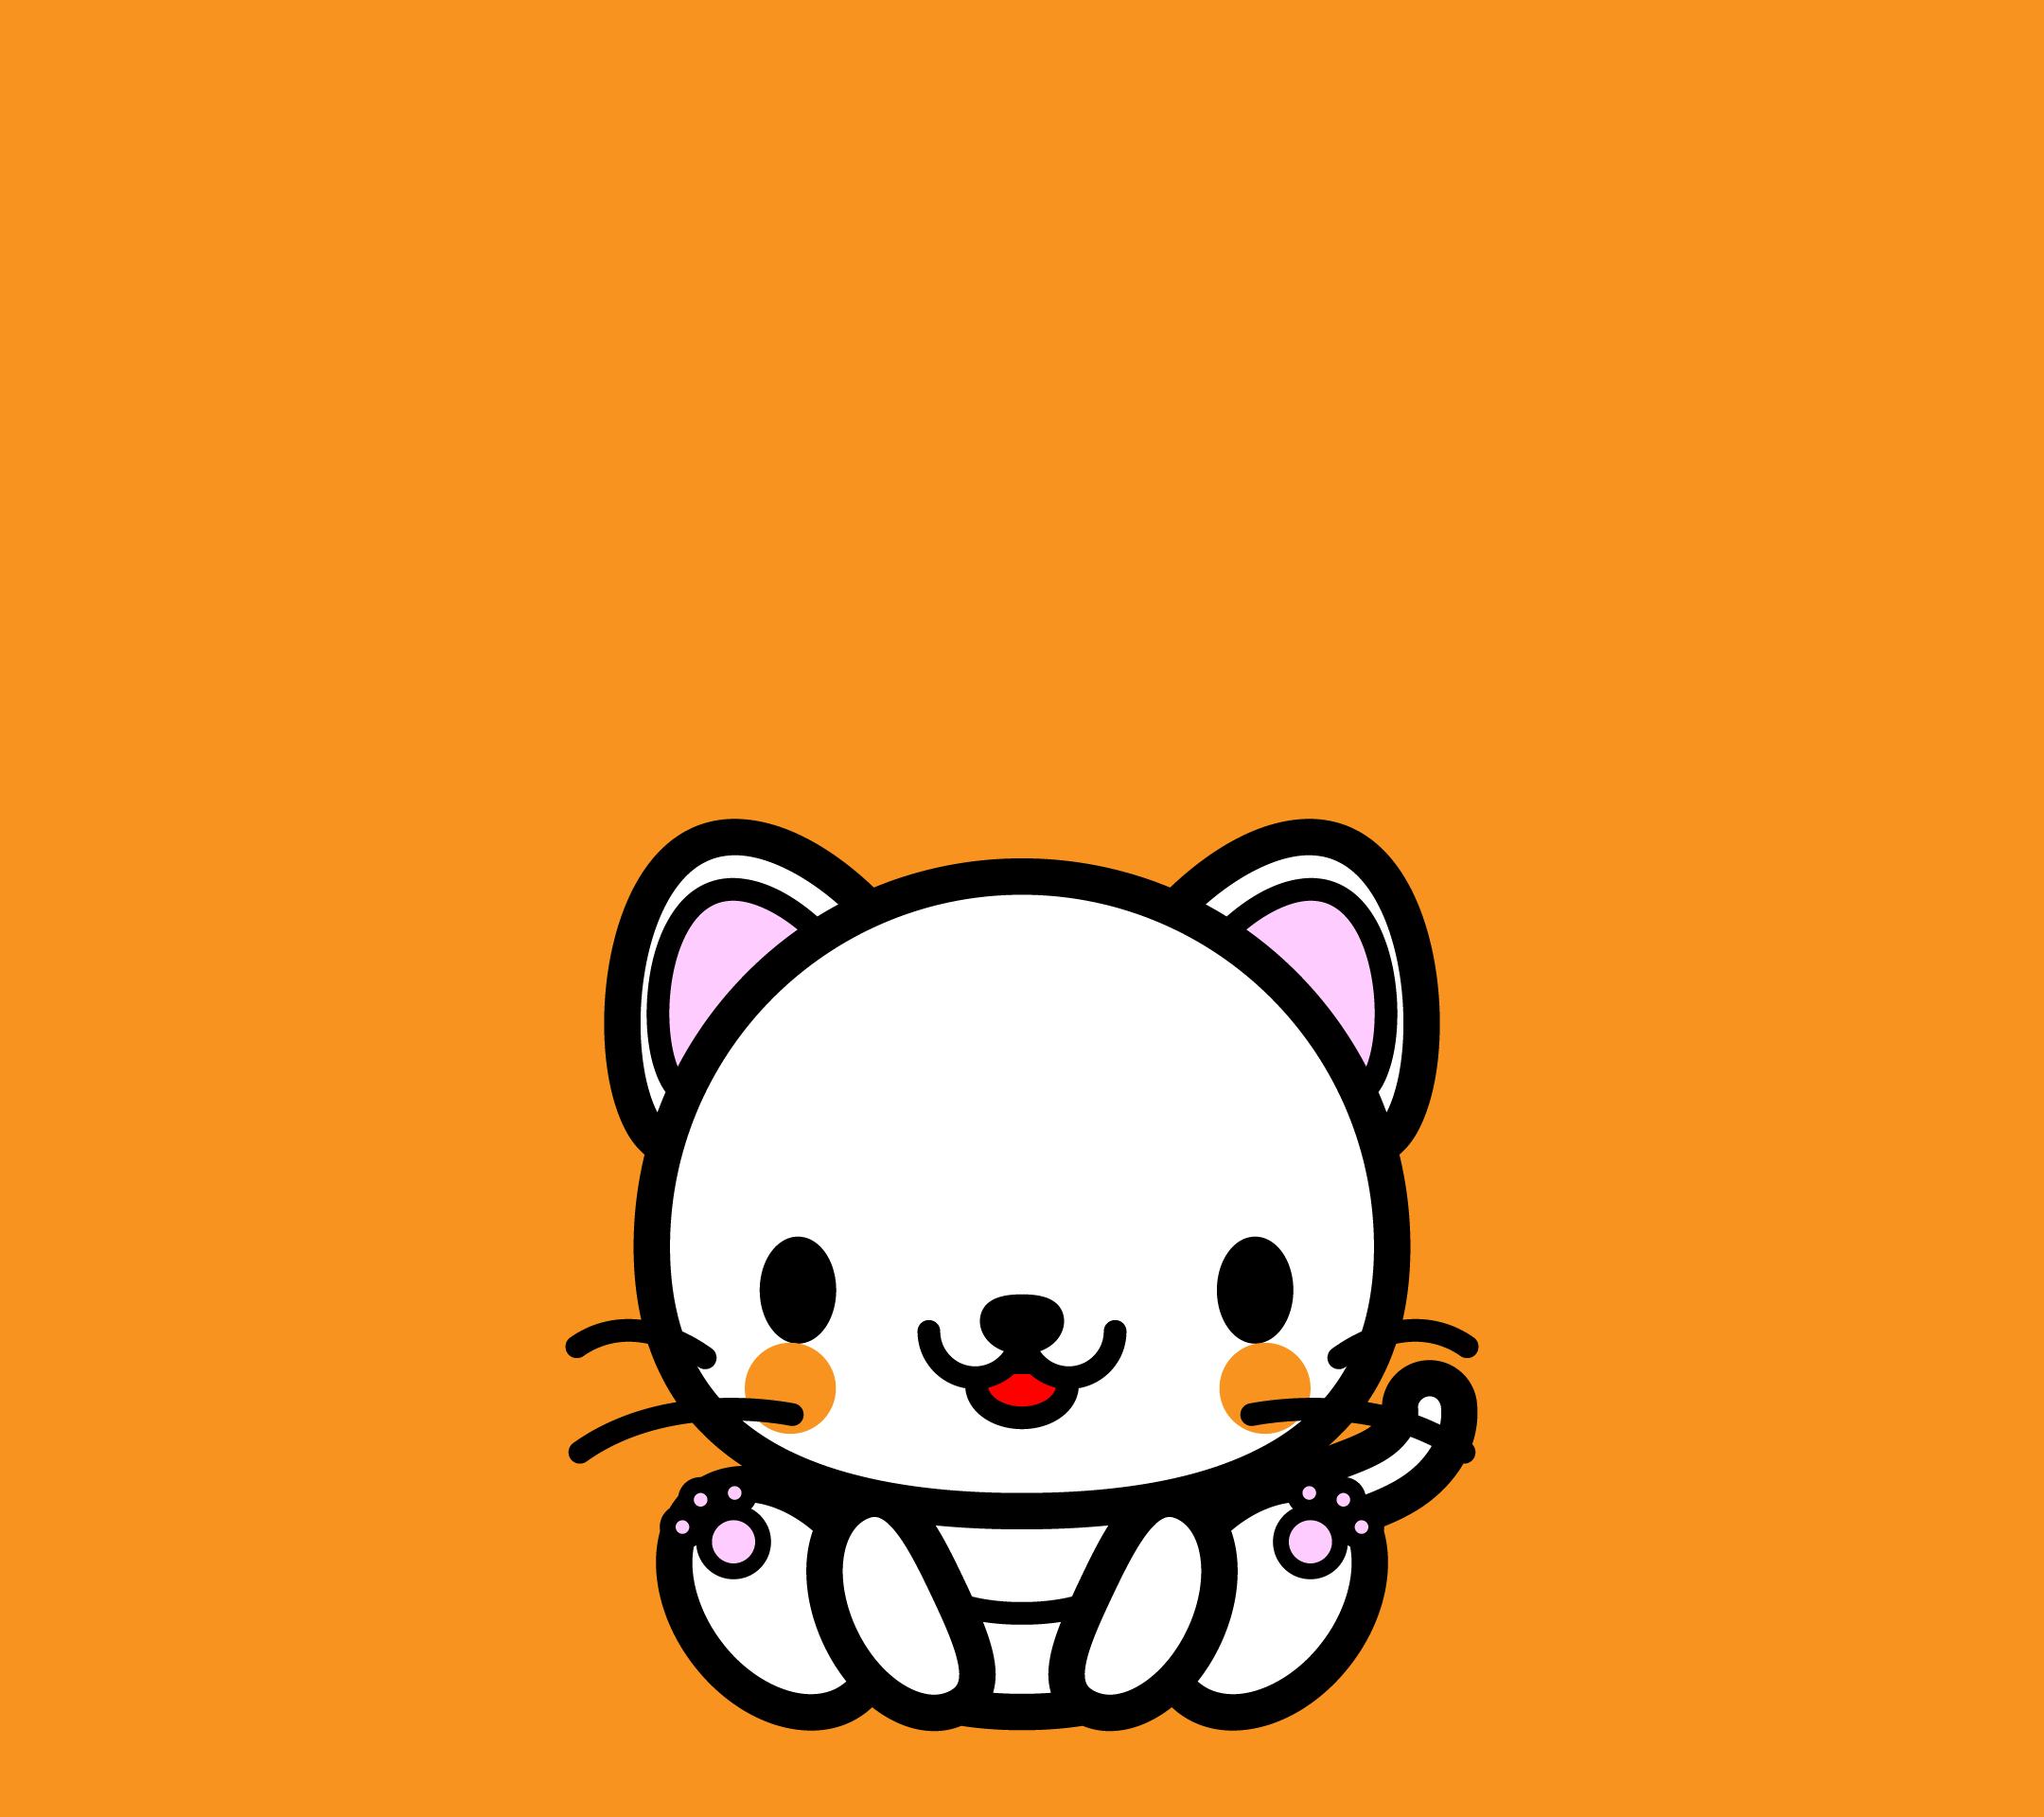 wallpaper3_sitwhitecat-orange-android